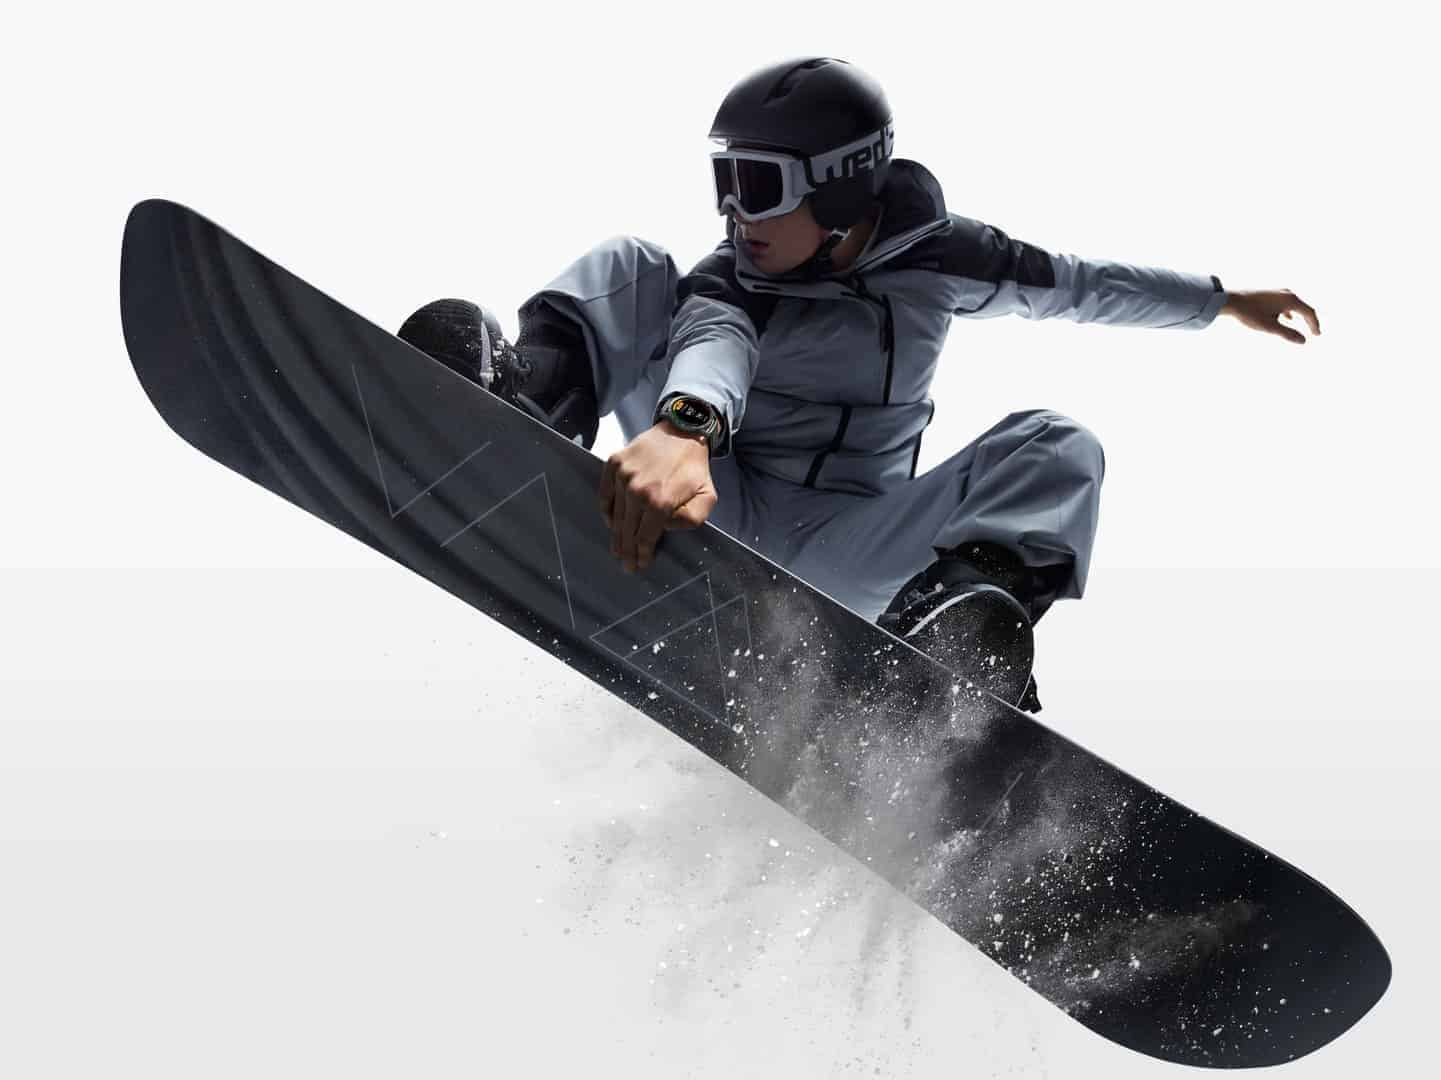 HONOR MagicWatch 2 Snowboarding 2